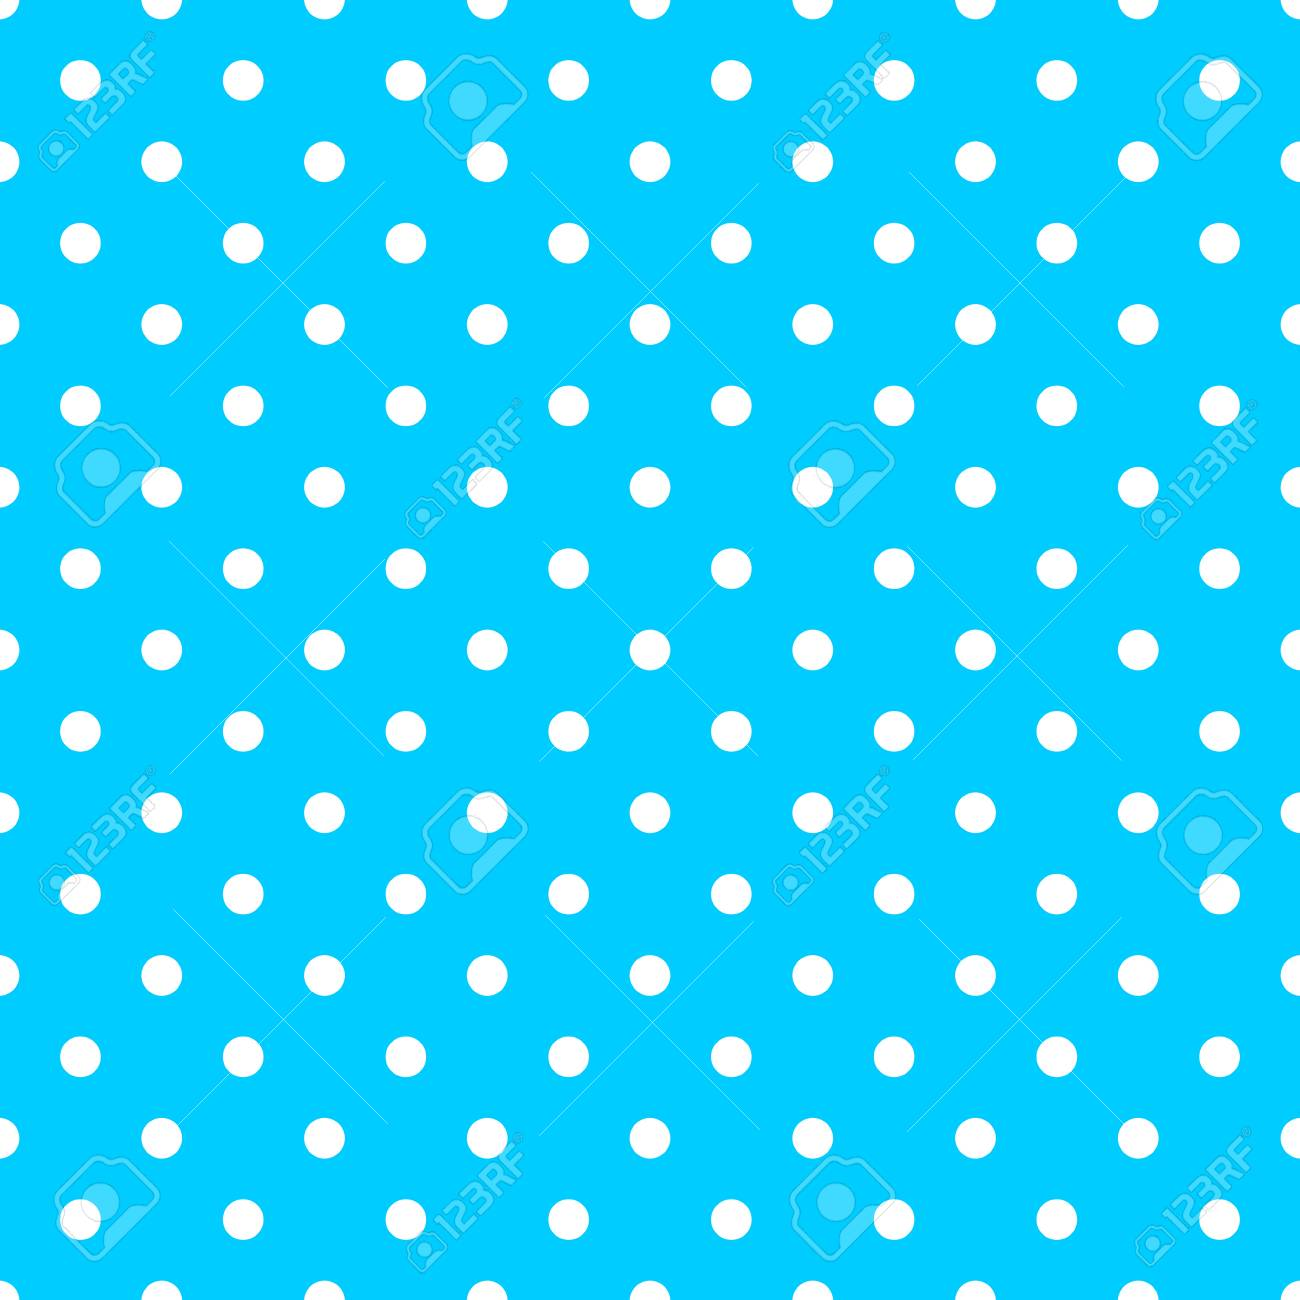 Tile Vector Pattern With Cute White Polka Dots On Blue Background Stock